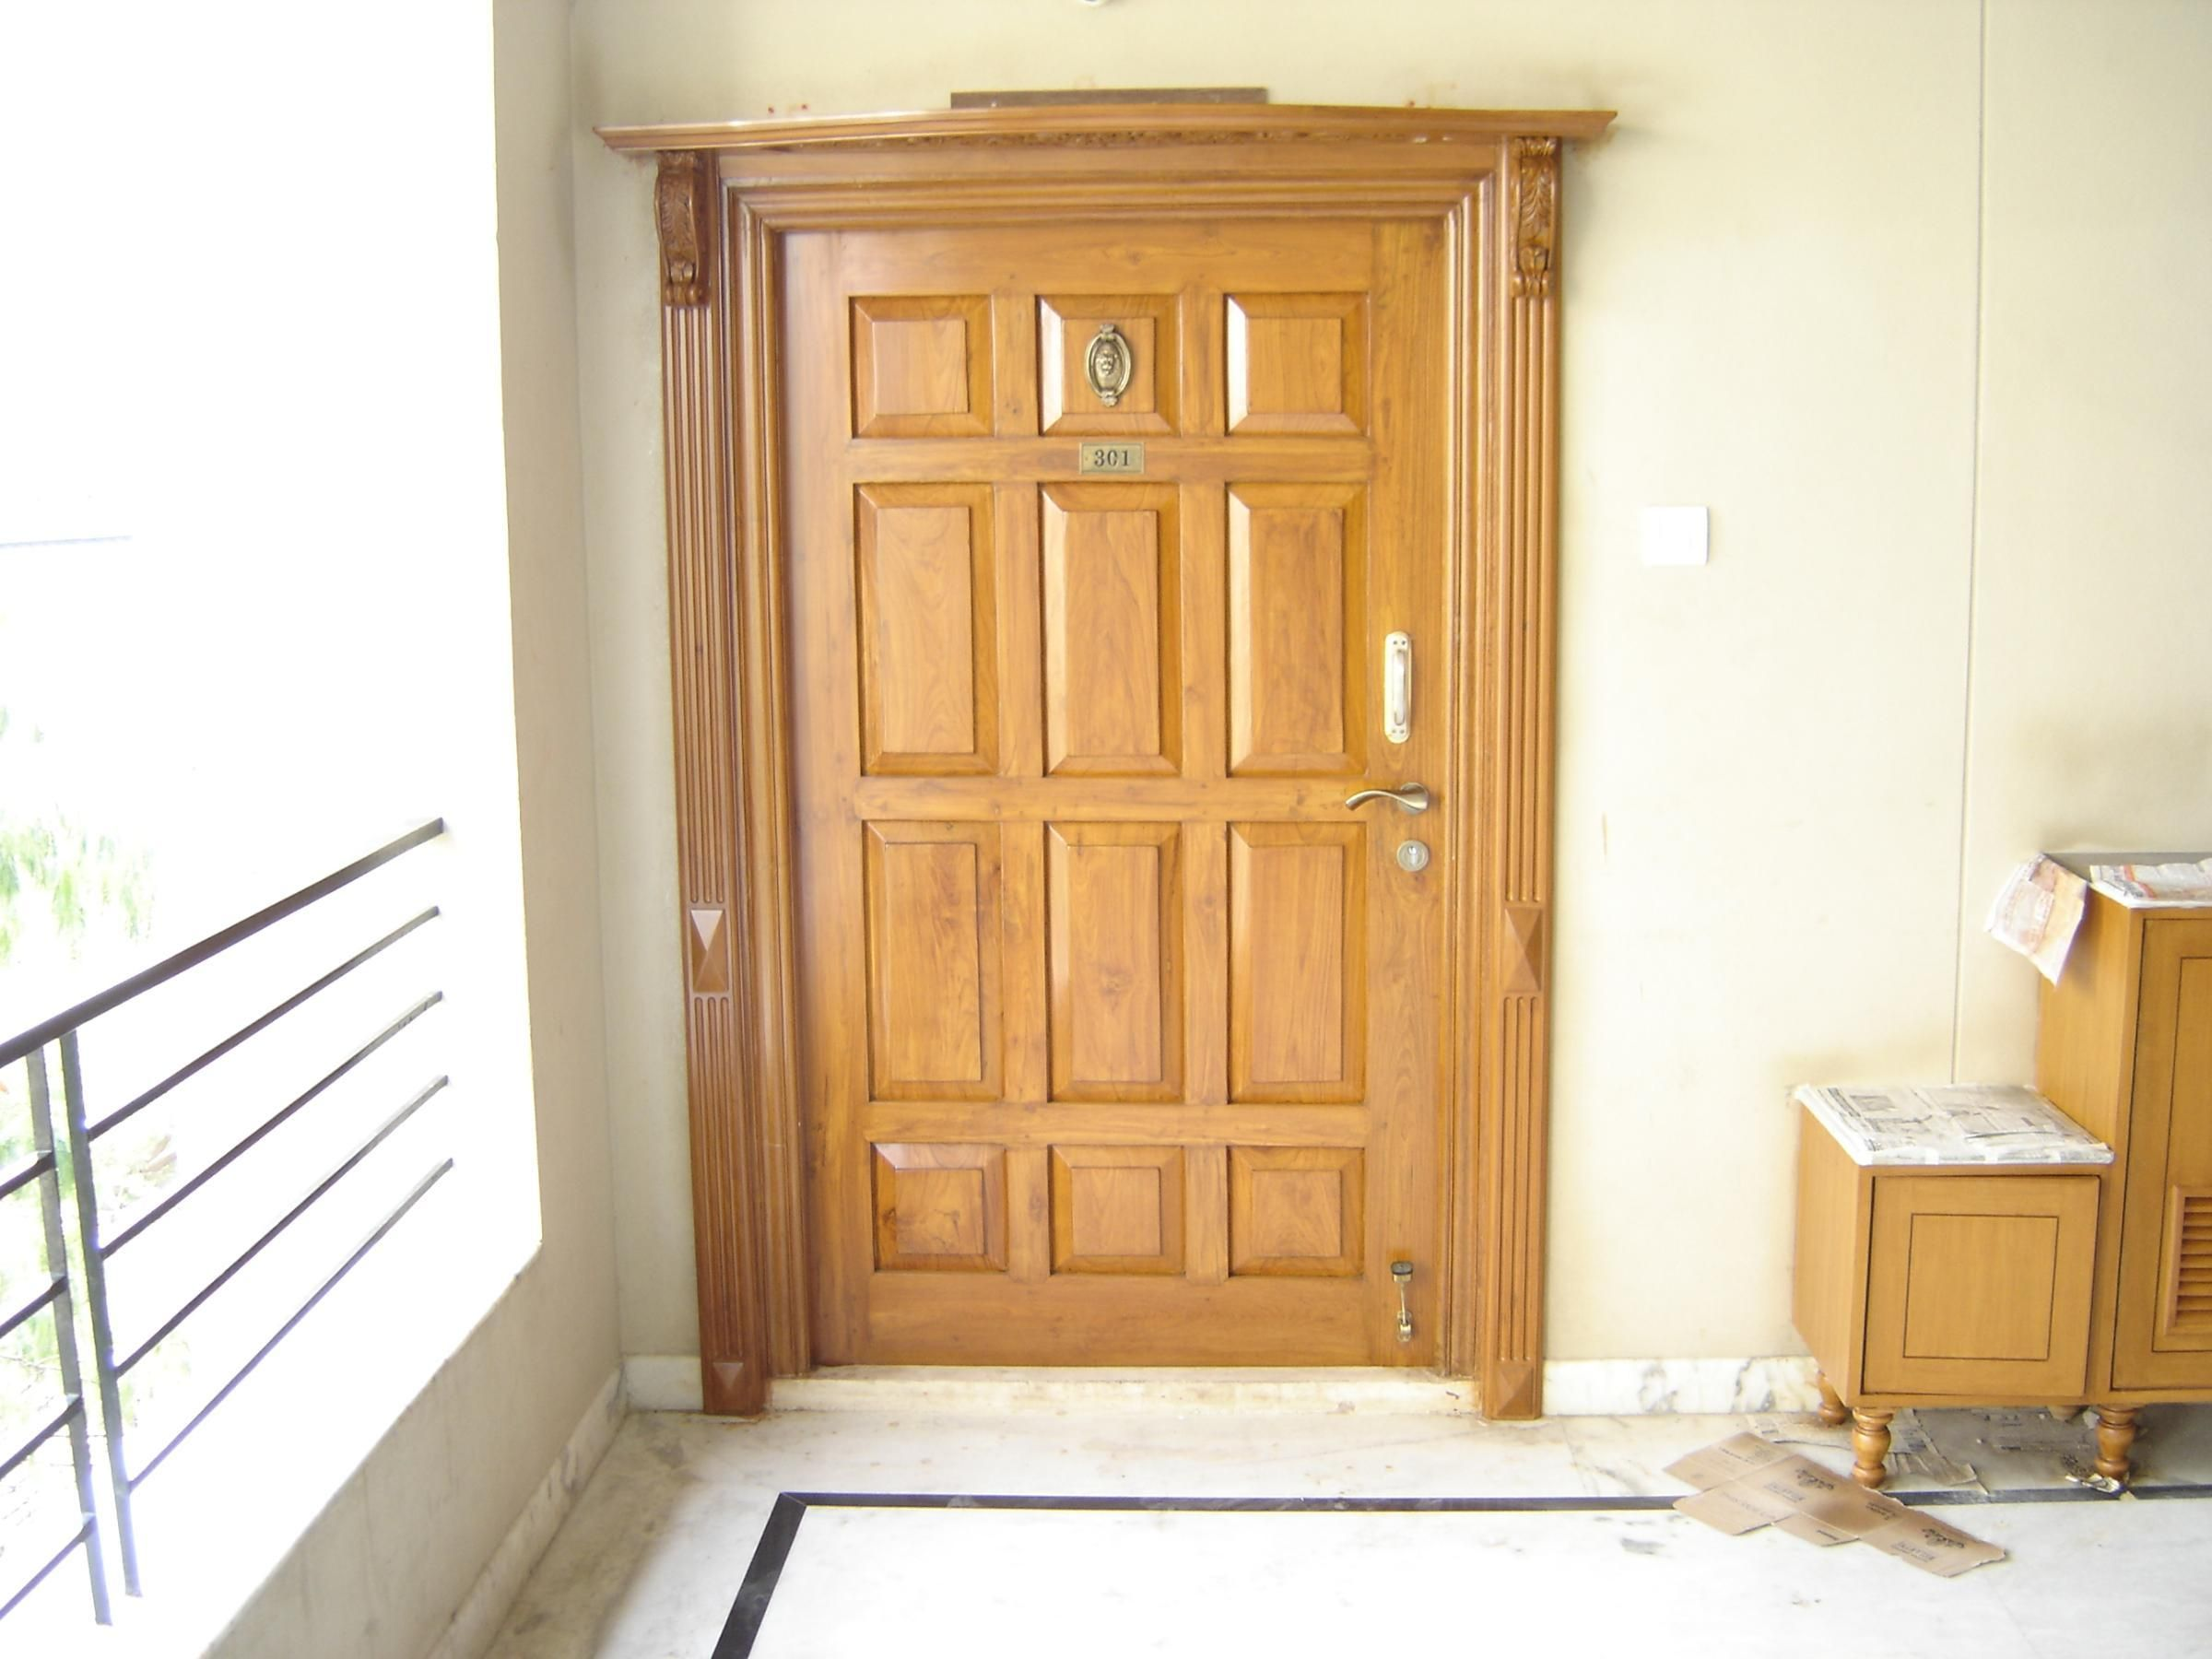 Main door design for flats photo door design pinterest for Main door design